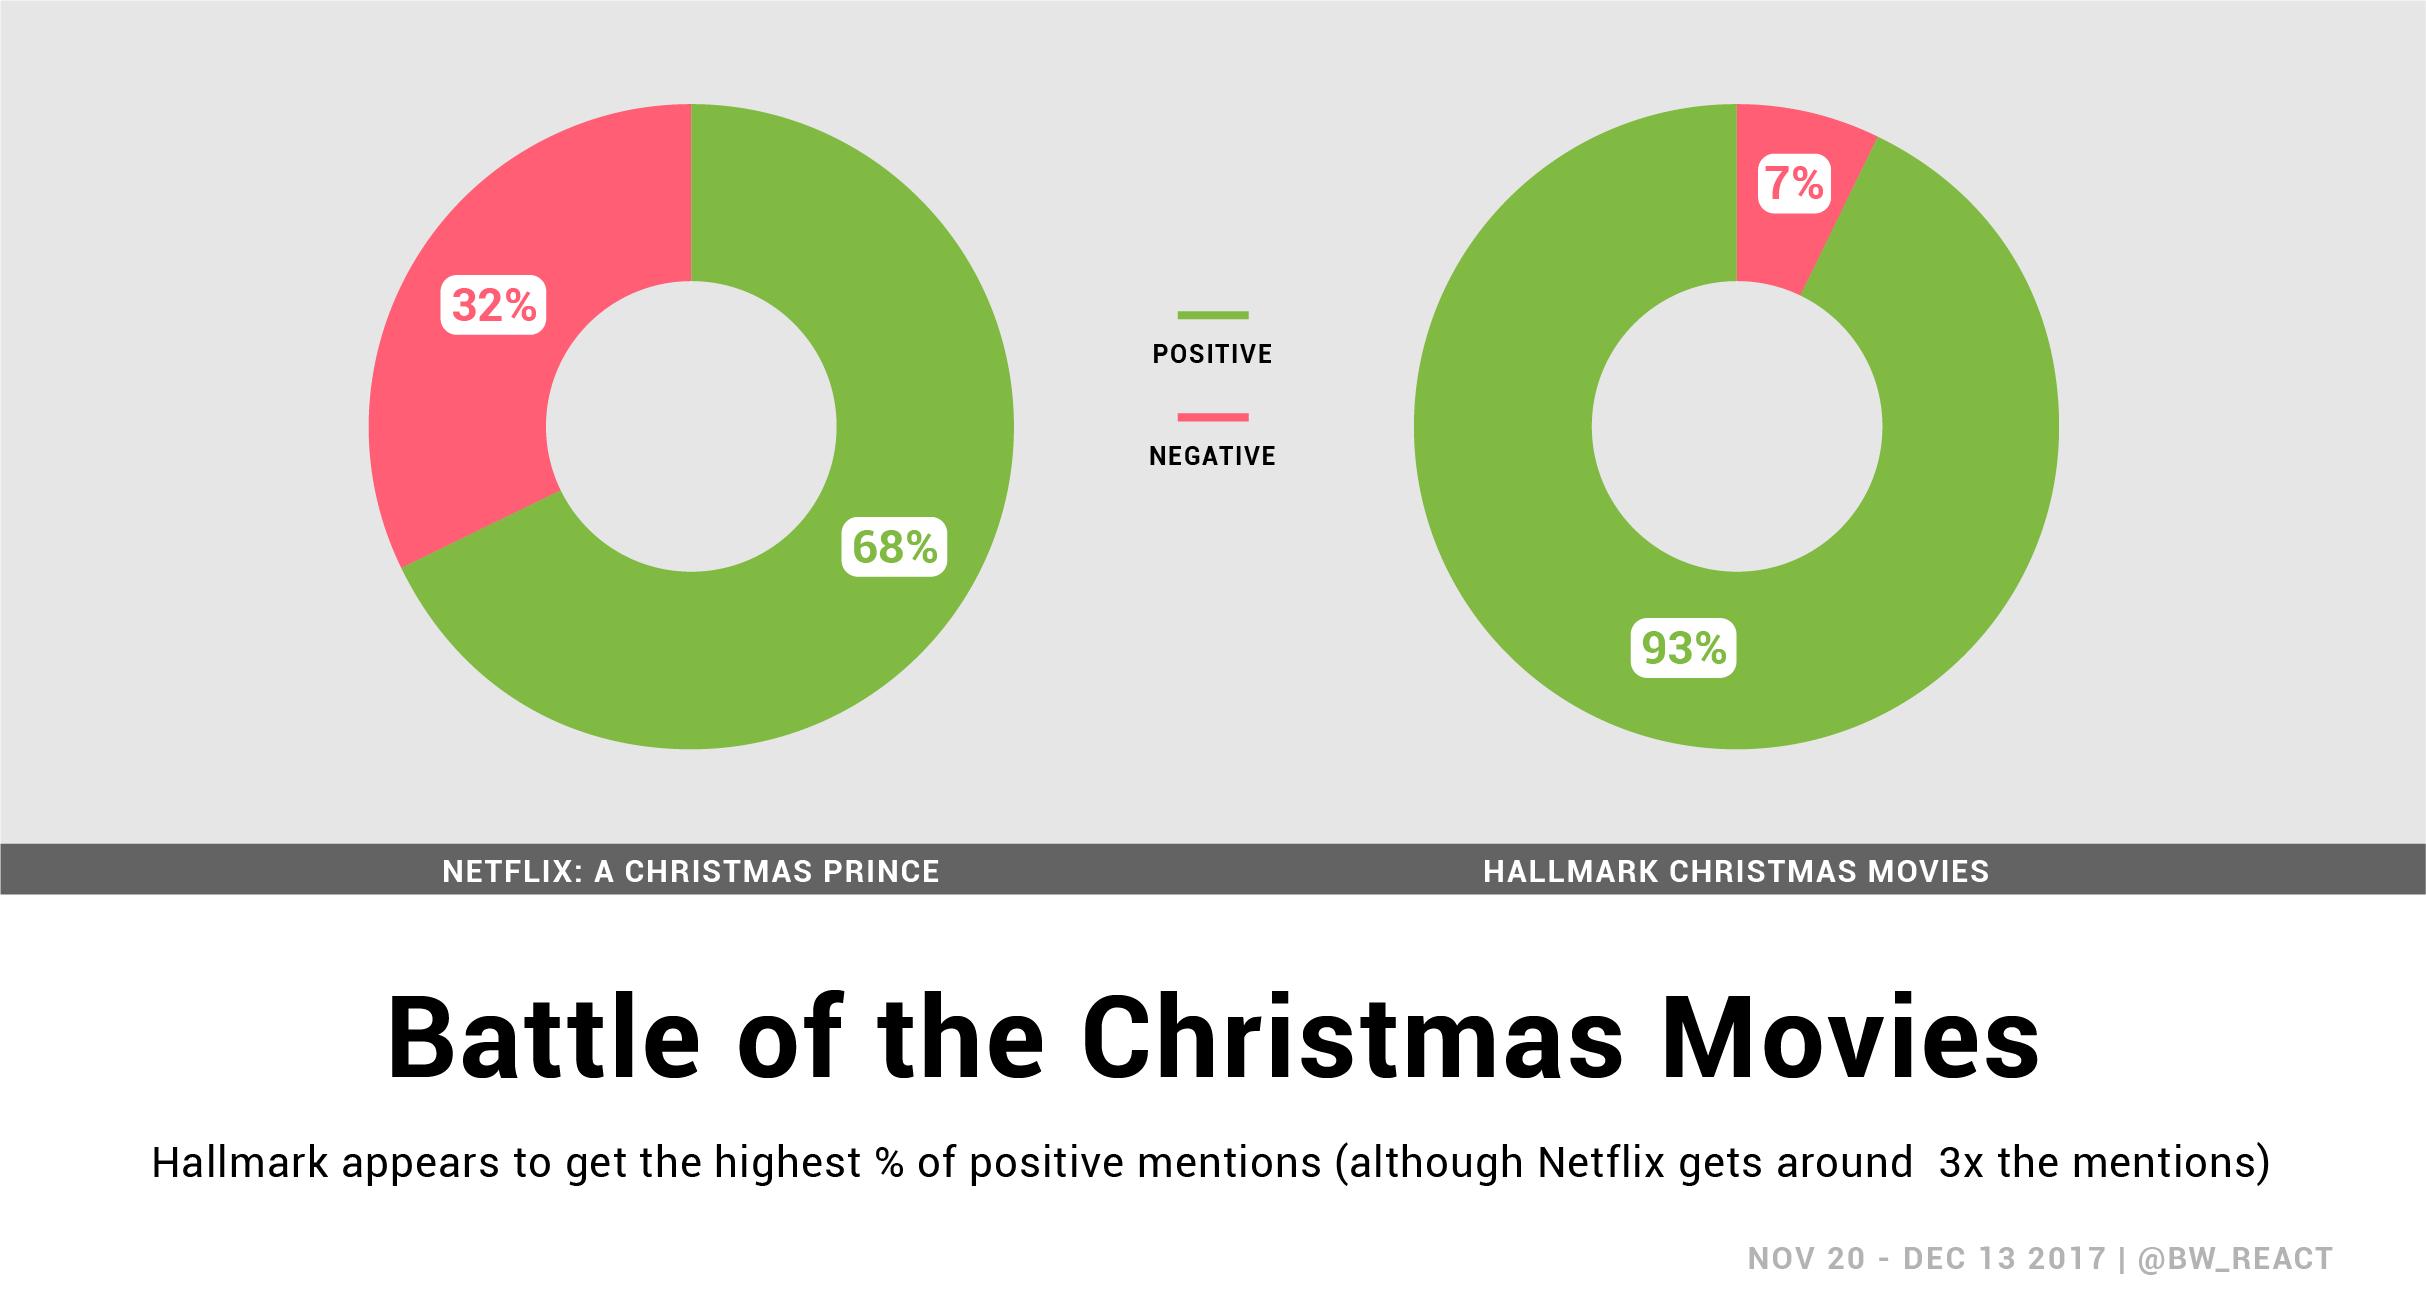 Pie charts show social sentiment around the two purveyors of holiday movies. Hallmark has a higher % of positive mentions.